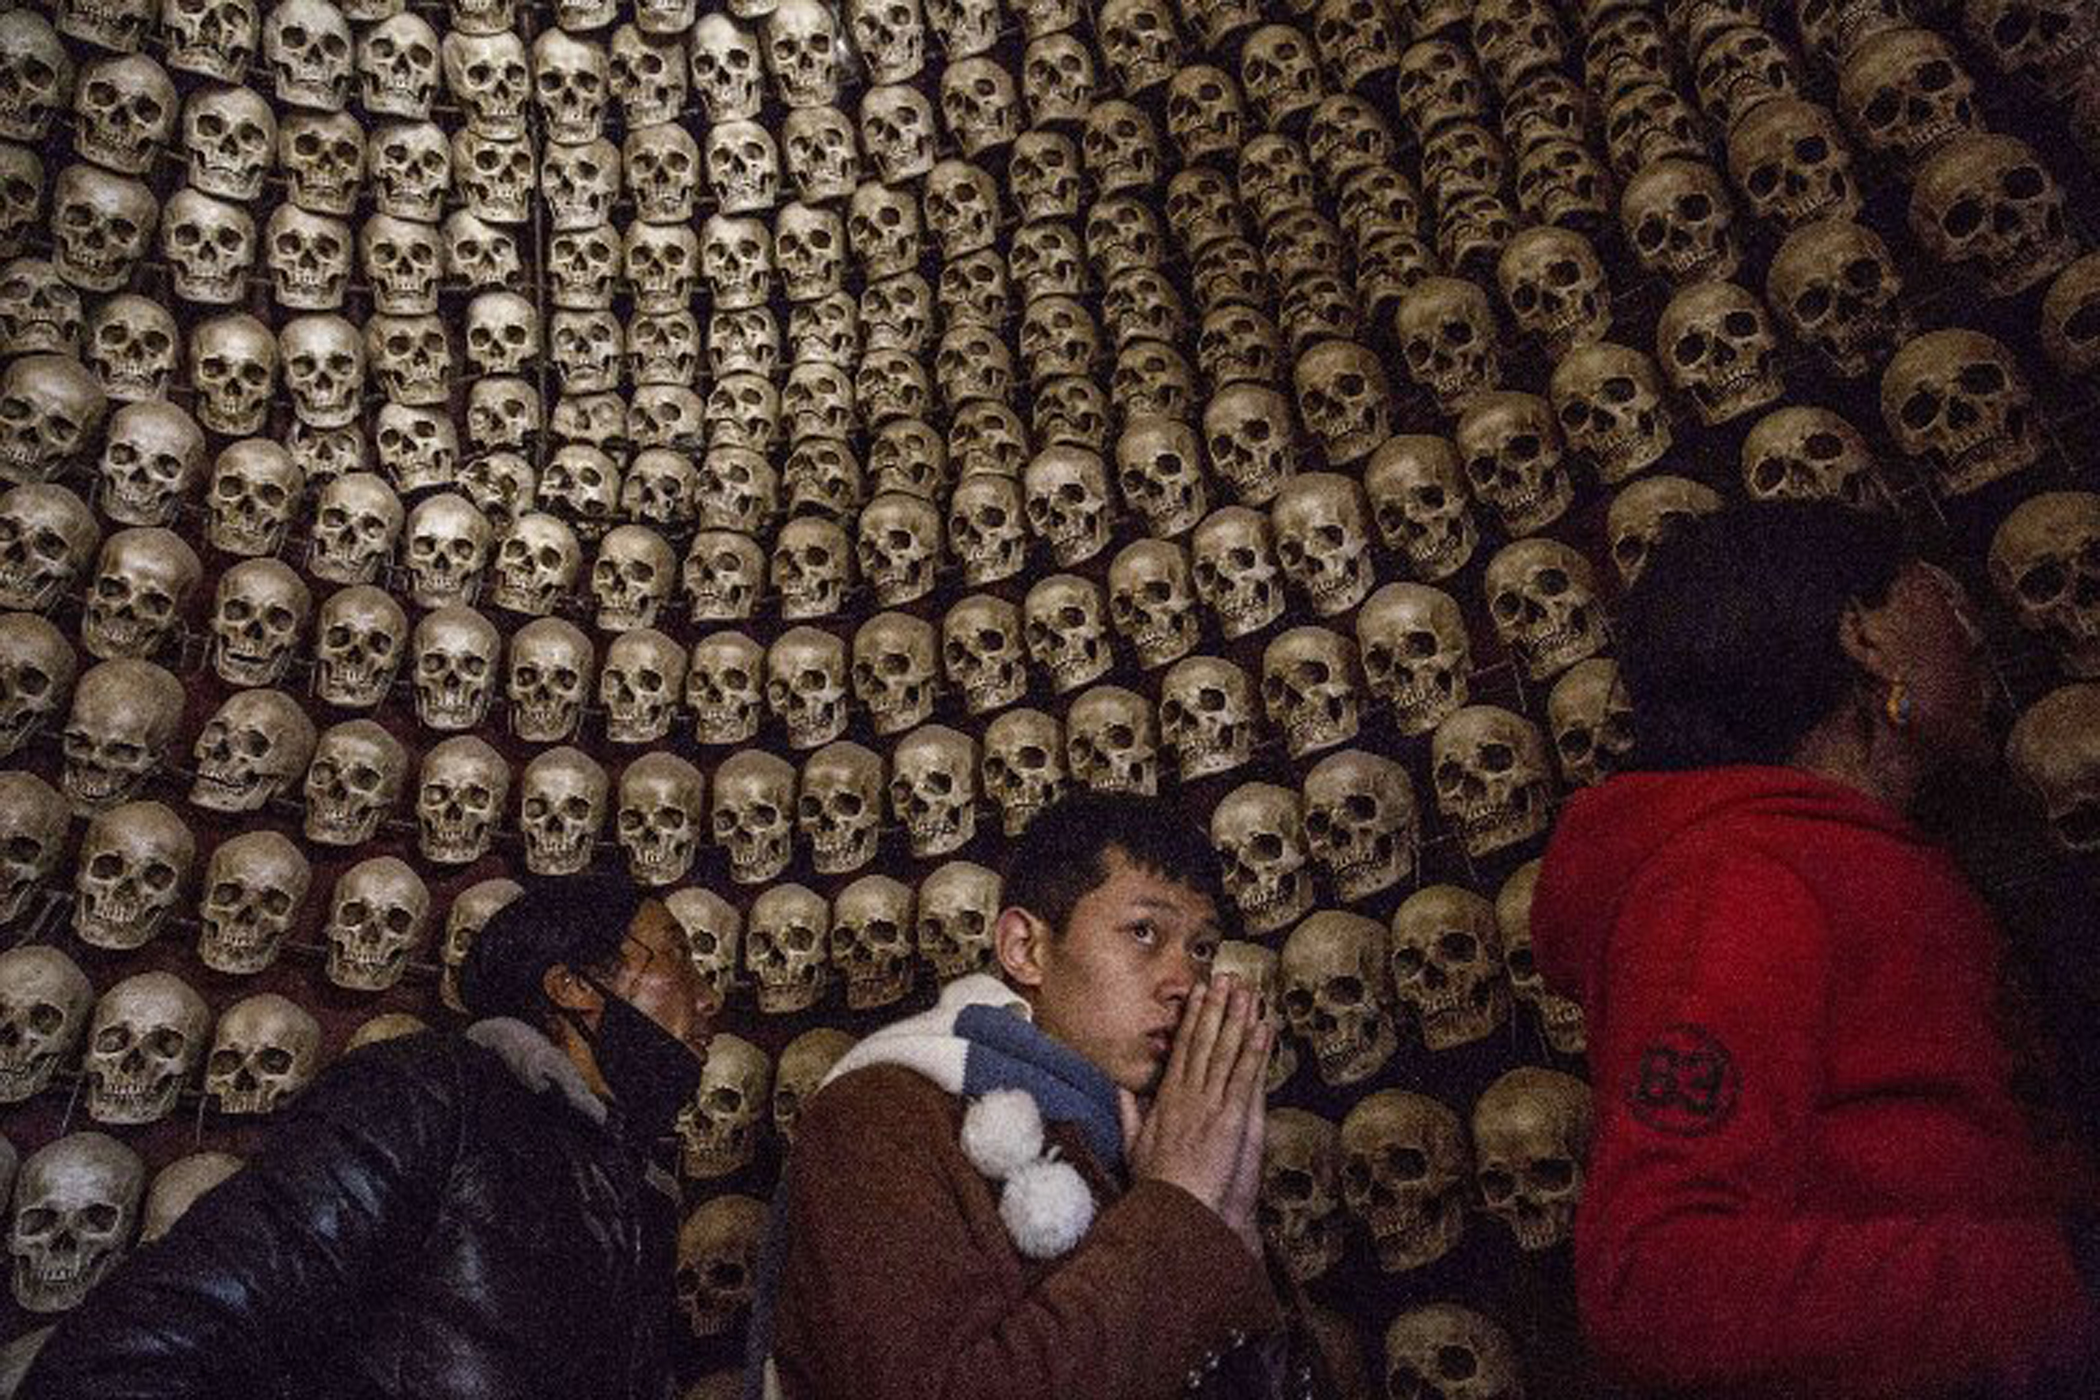 A shrine is made of fake skulls at the sky burial site near the Larung Wuming Buddhist Institute.